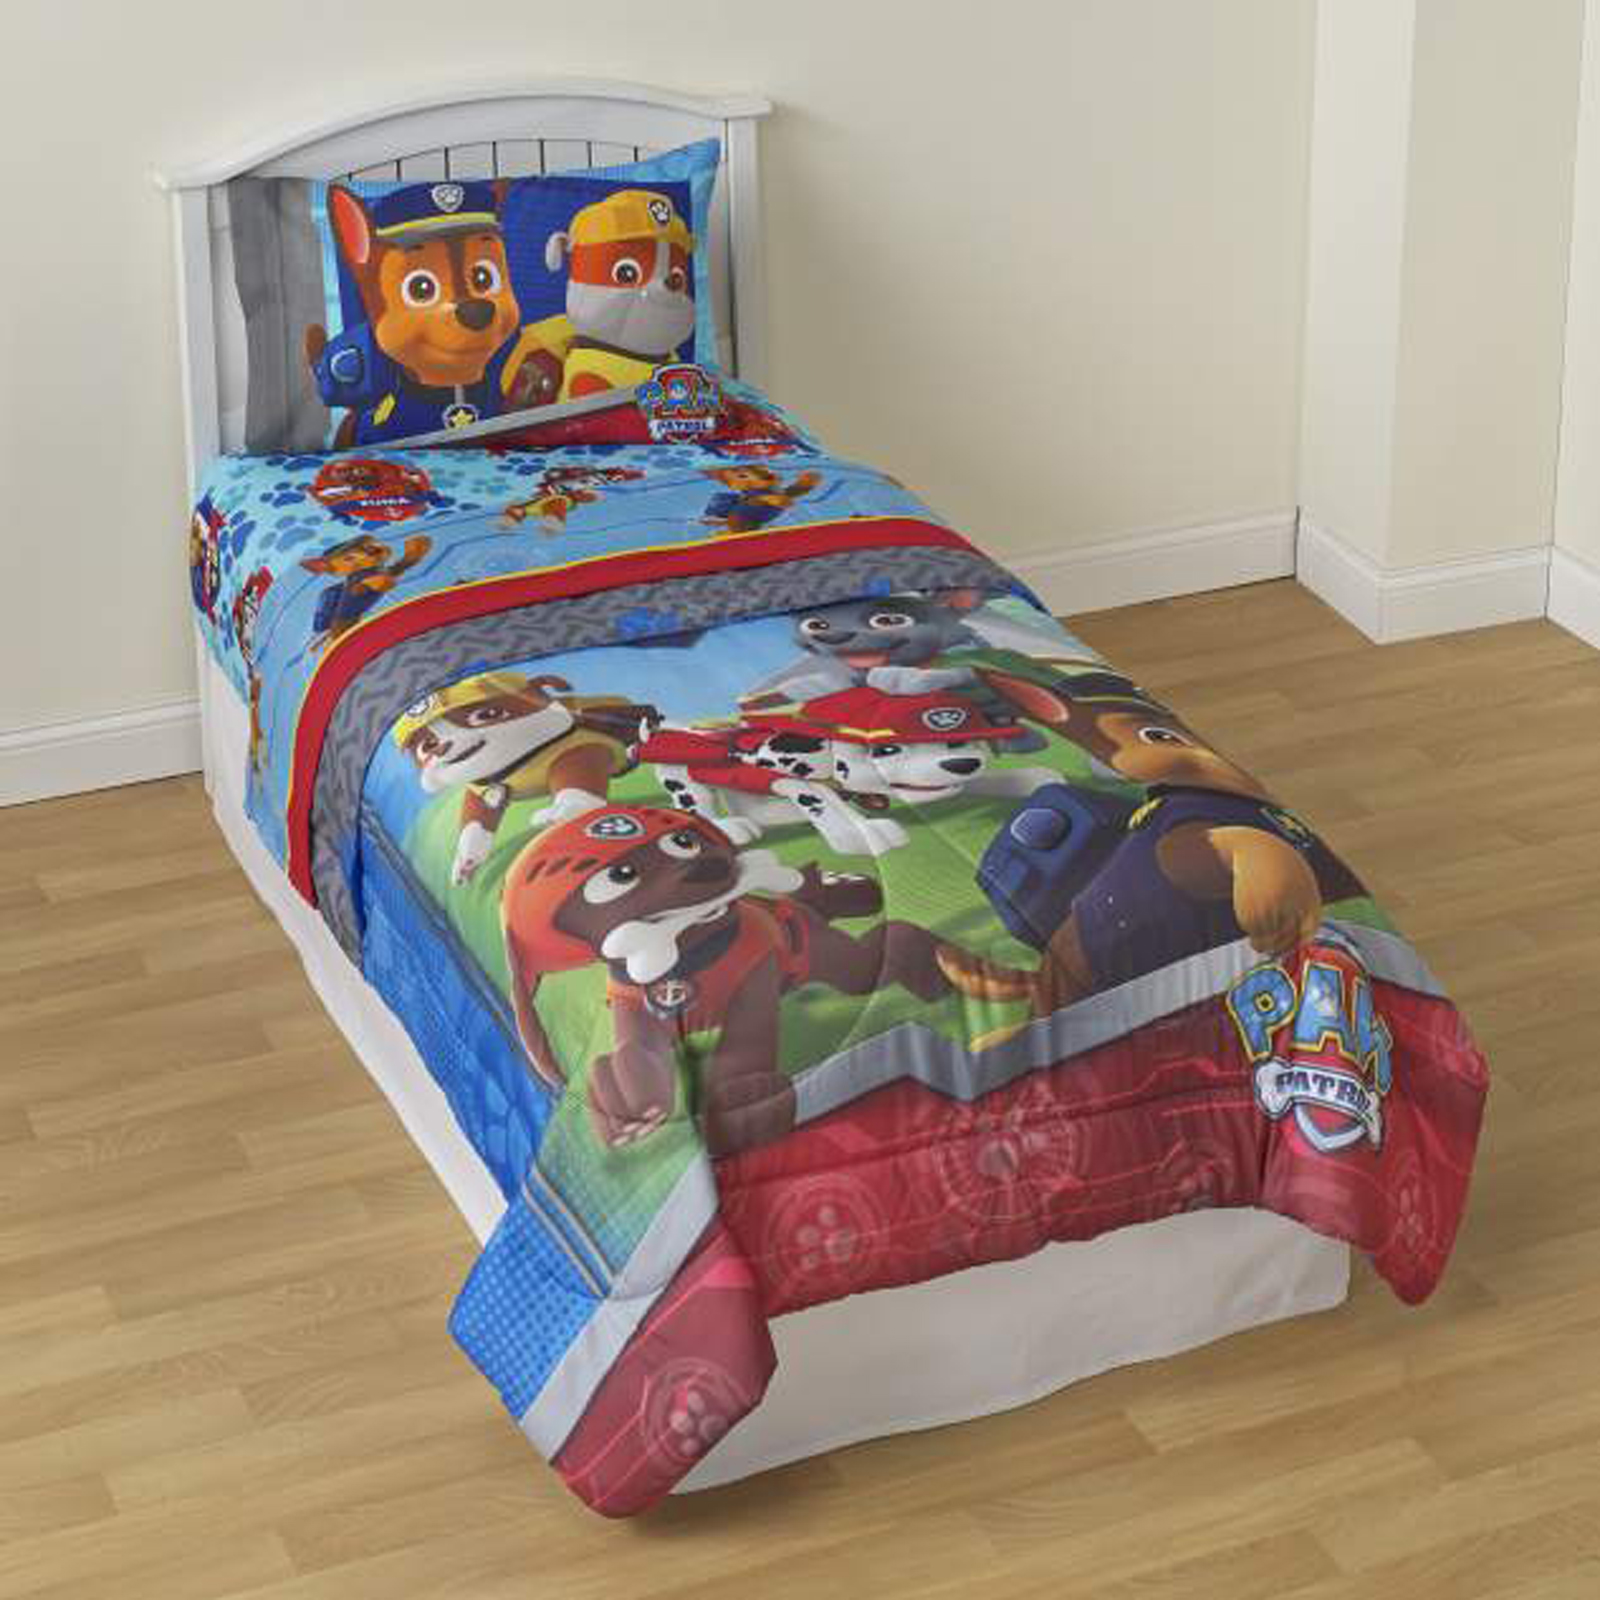 Image of Nickelodeon Comforter - PAW Patrol, Size: Twin, Blue